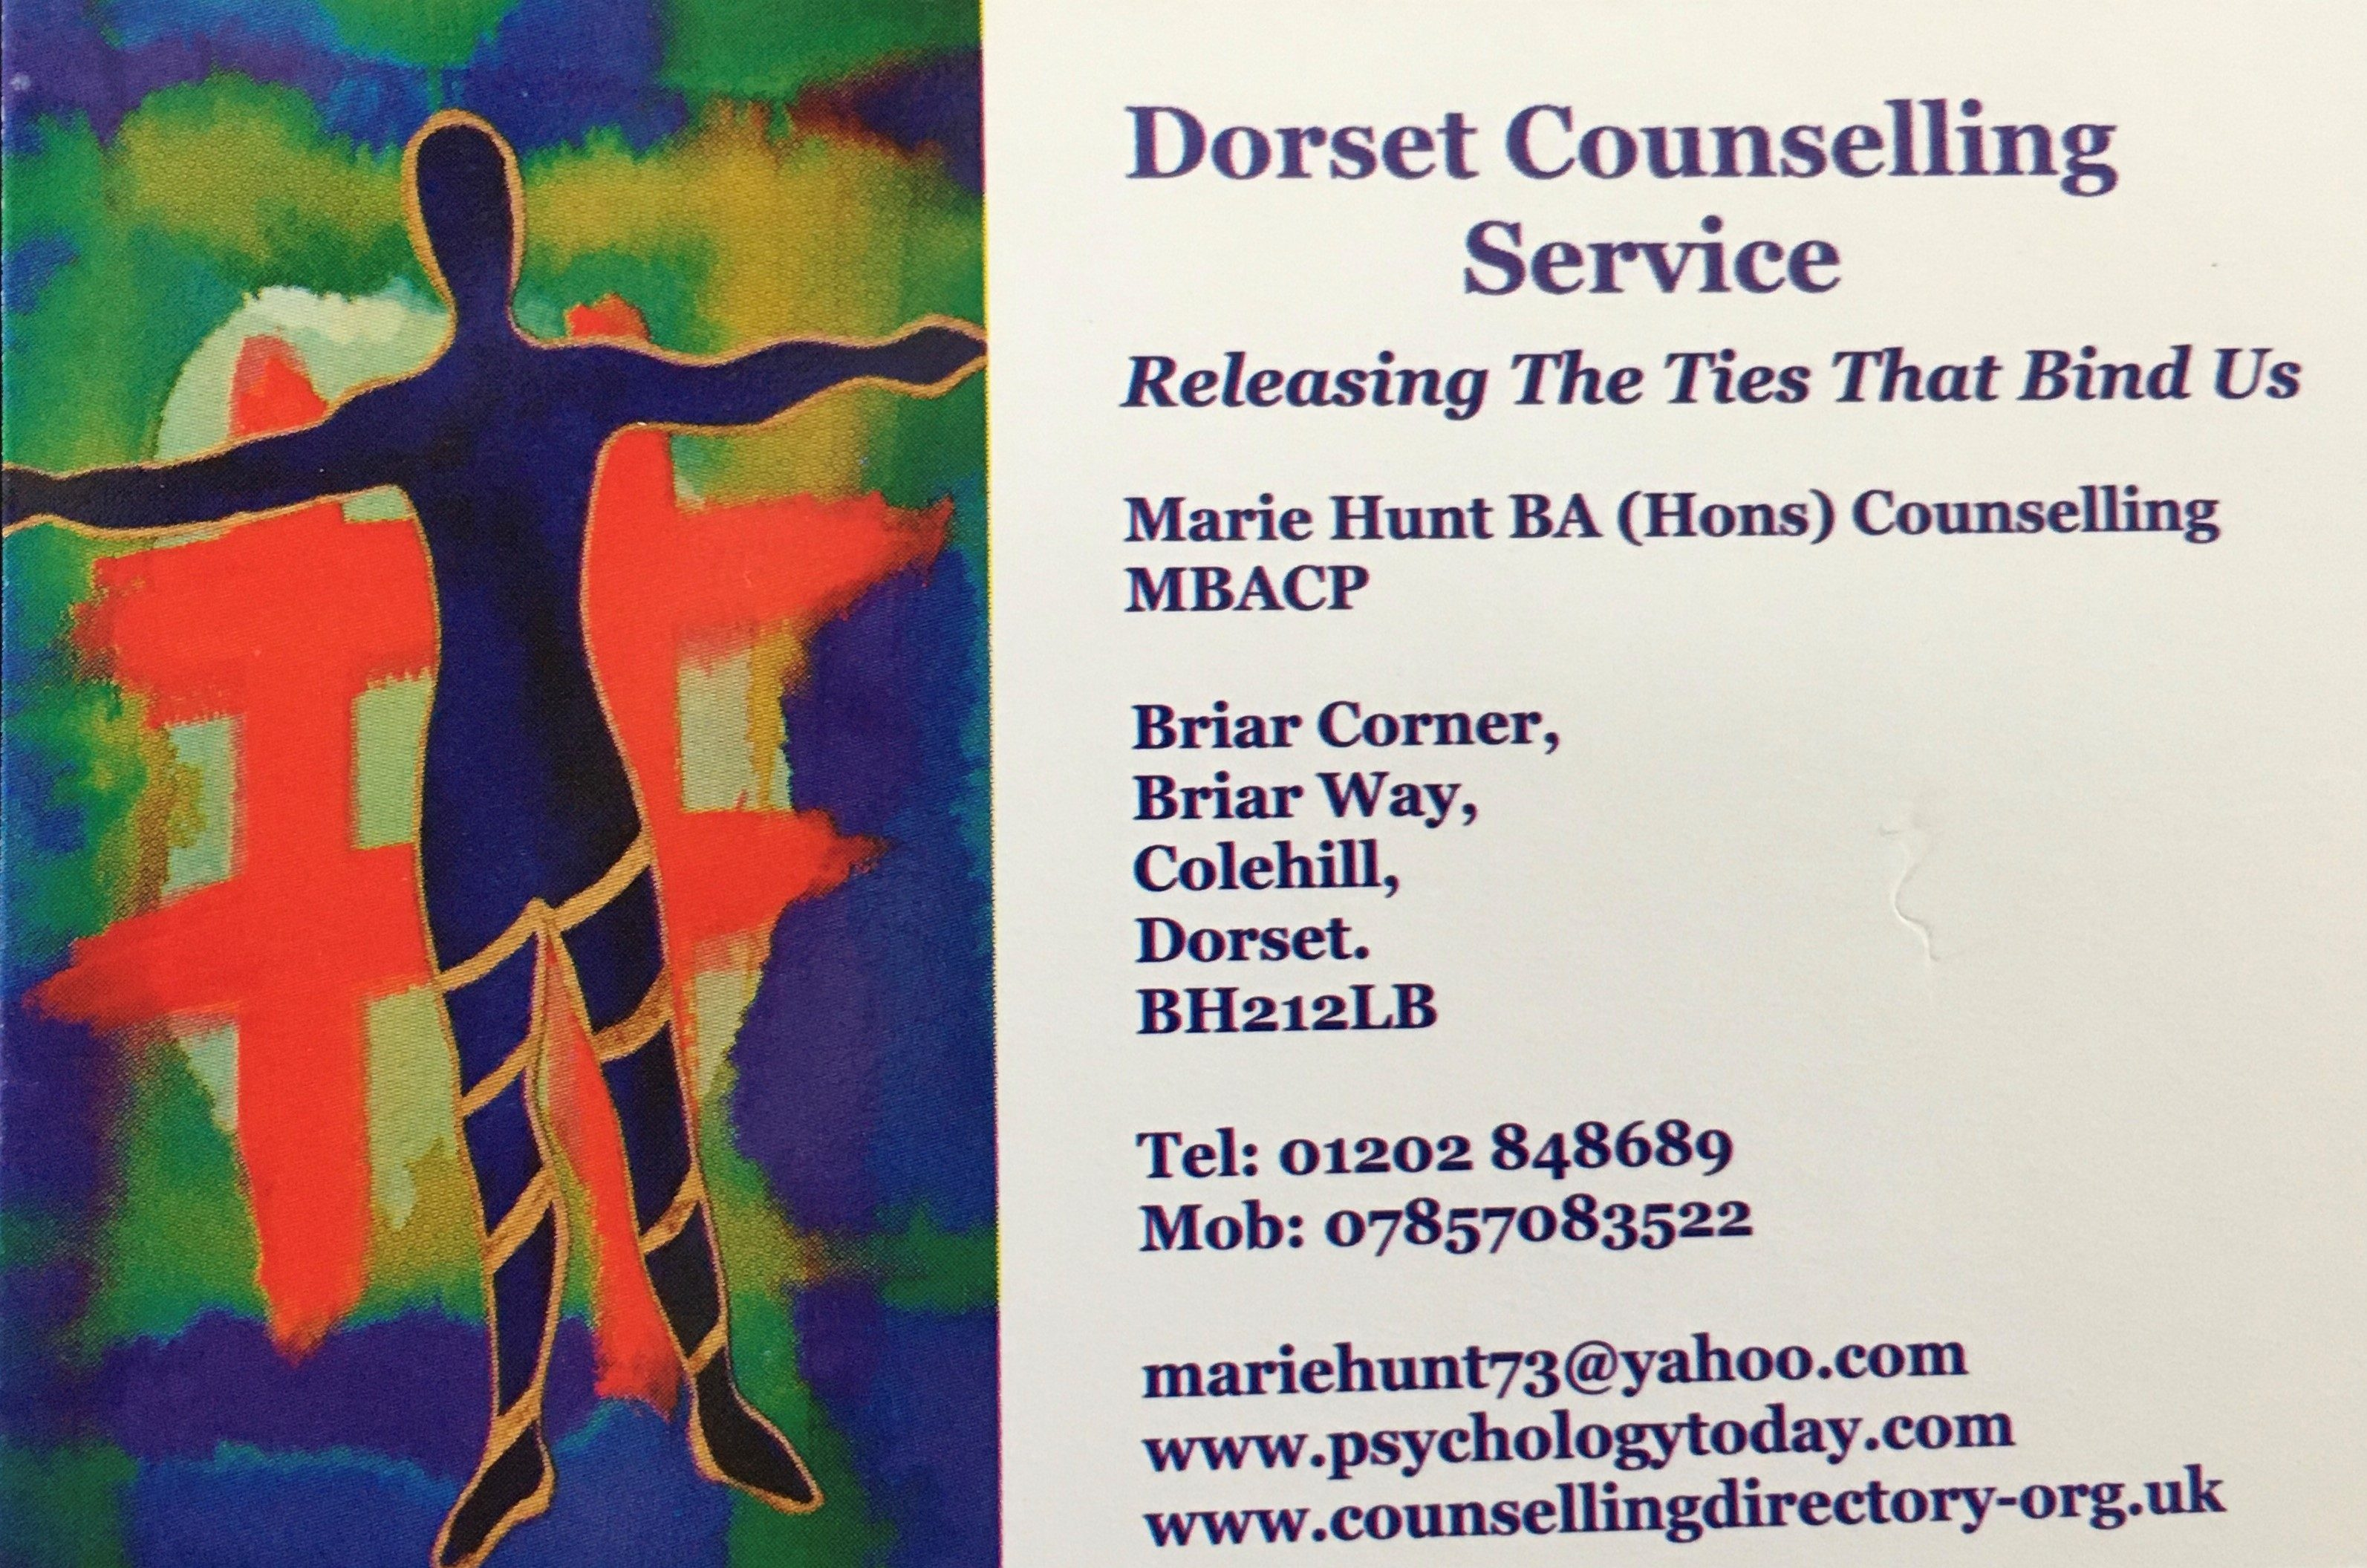 Dorset Counselling Service